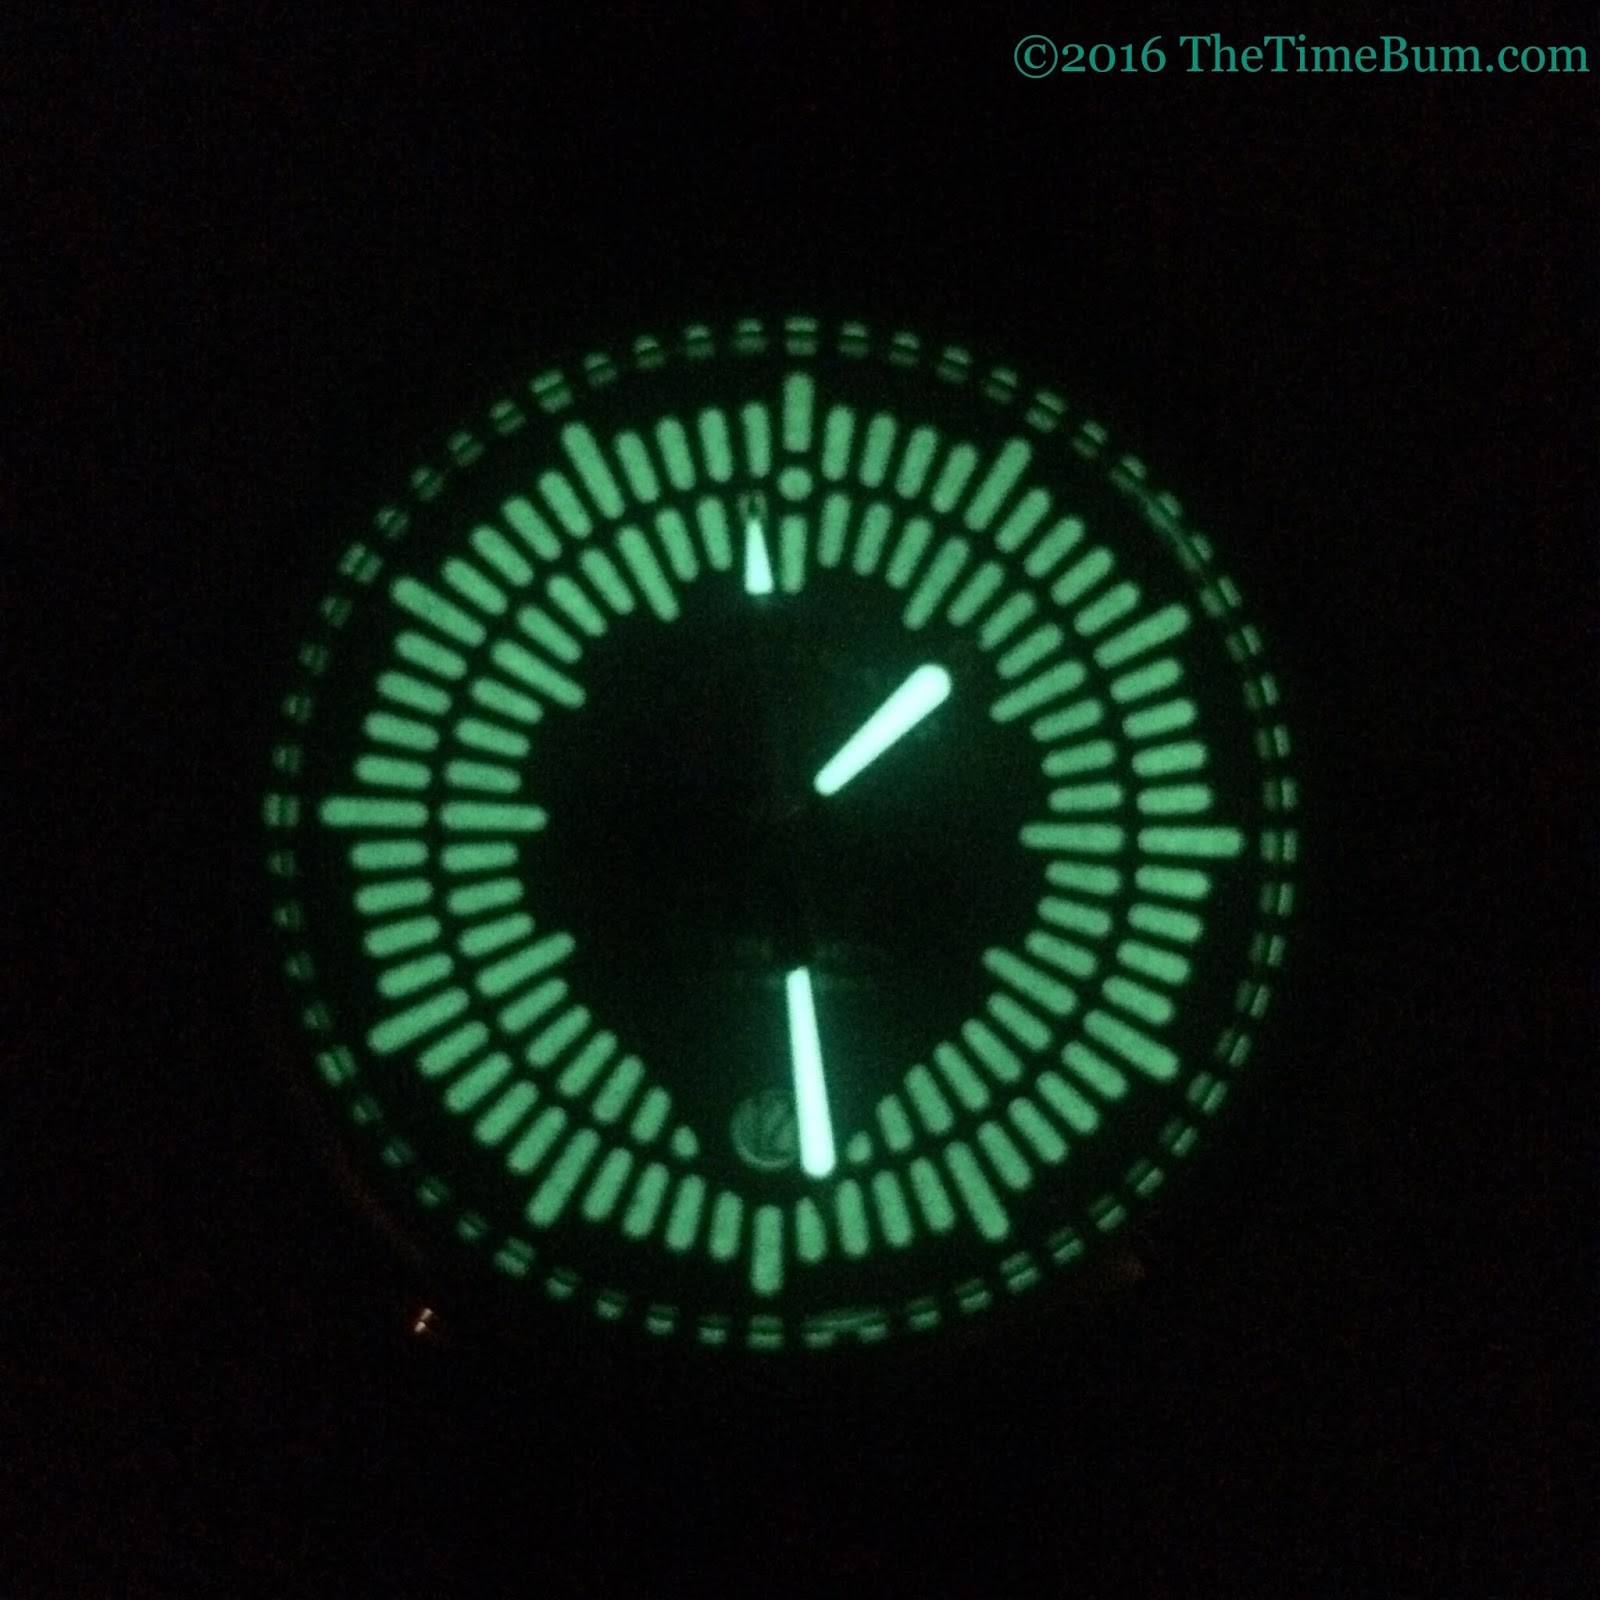 Tangramatic Hyperion automatic date lume